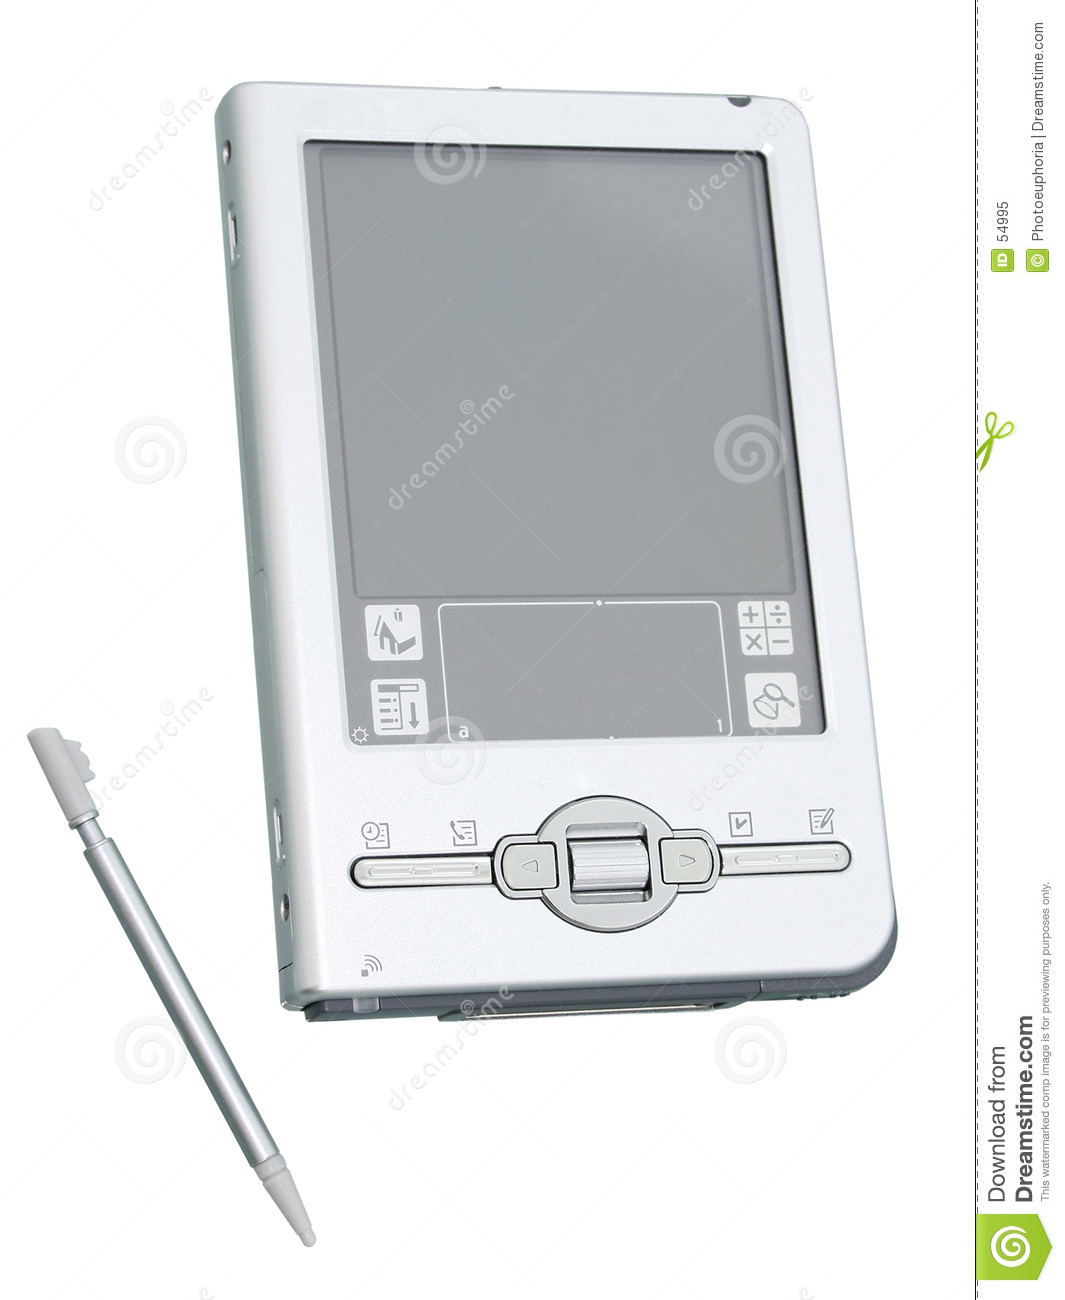 Download Palmtop Et Styliste Ont Isolé (image 8.2mp) Image stock - Image du poche, isolement: 54995